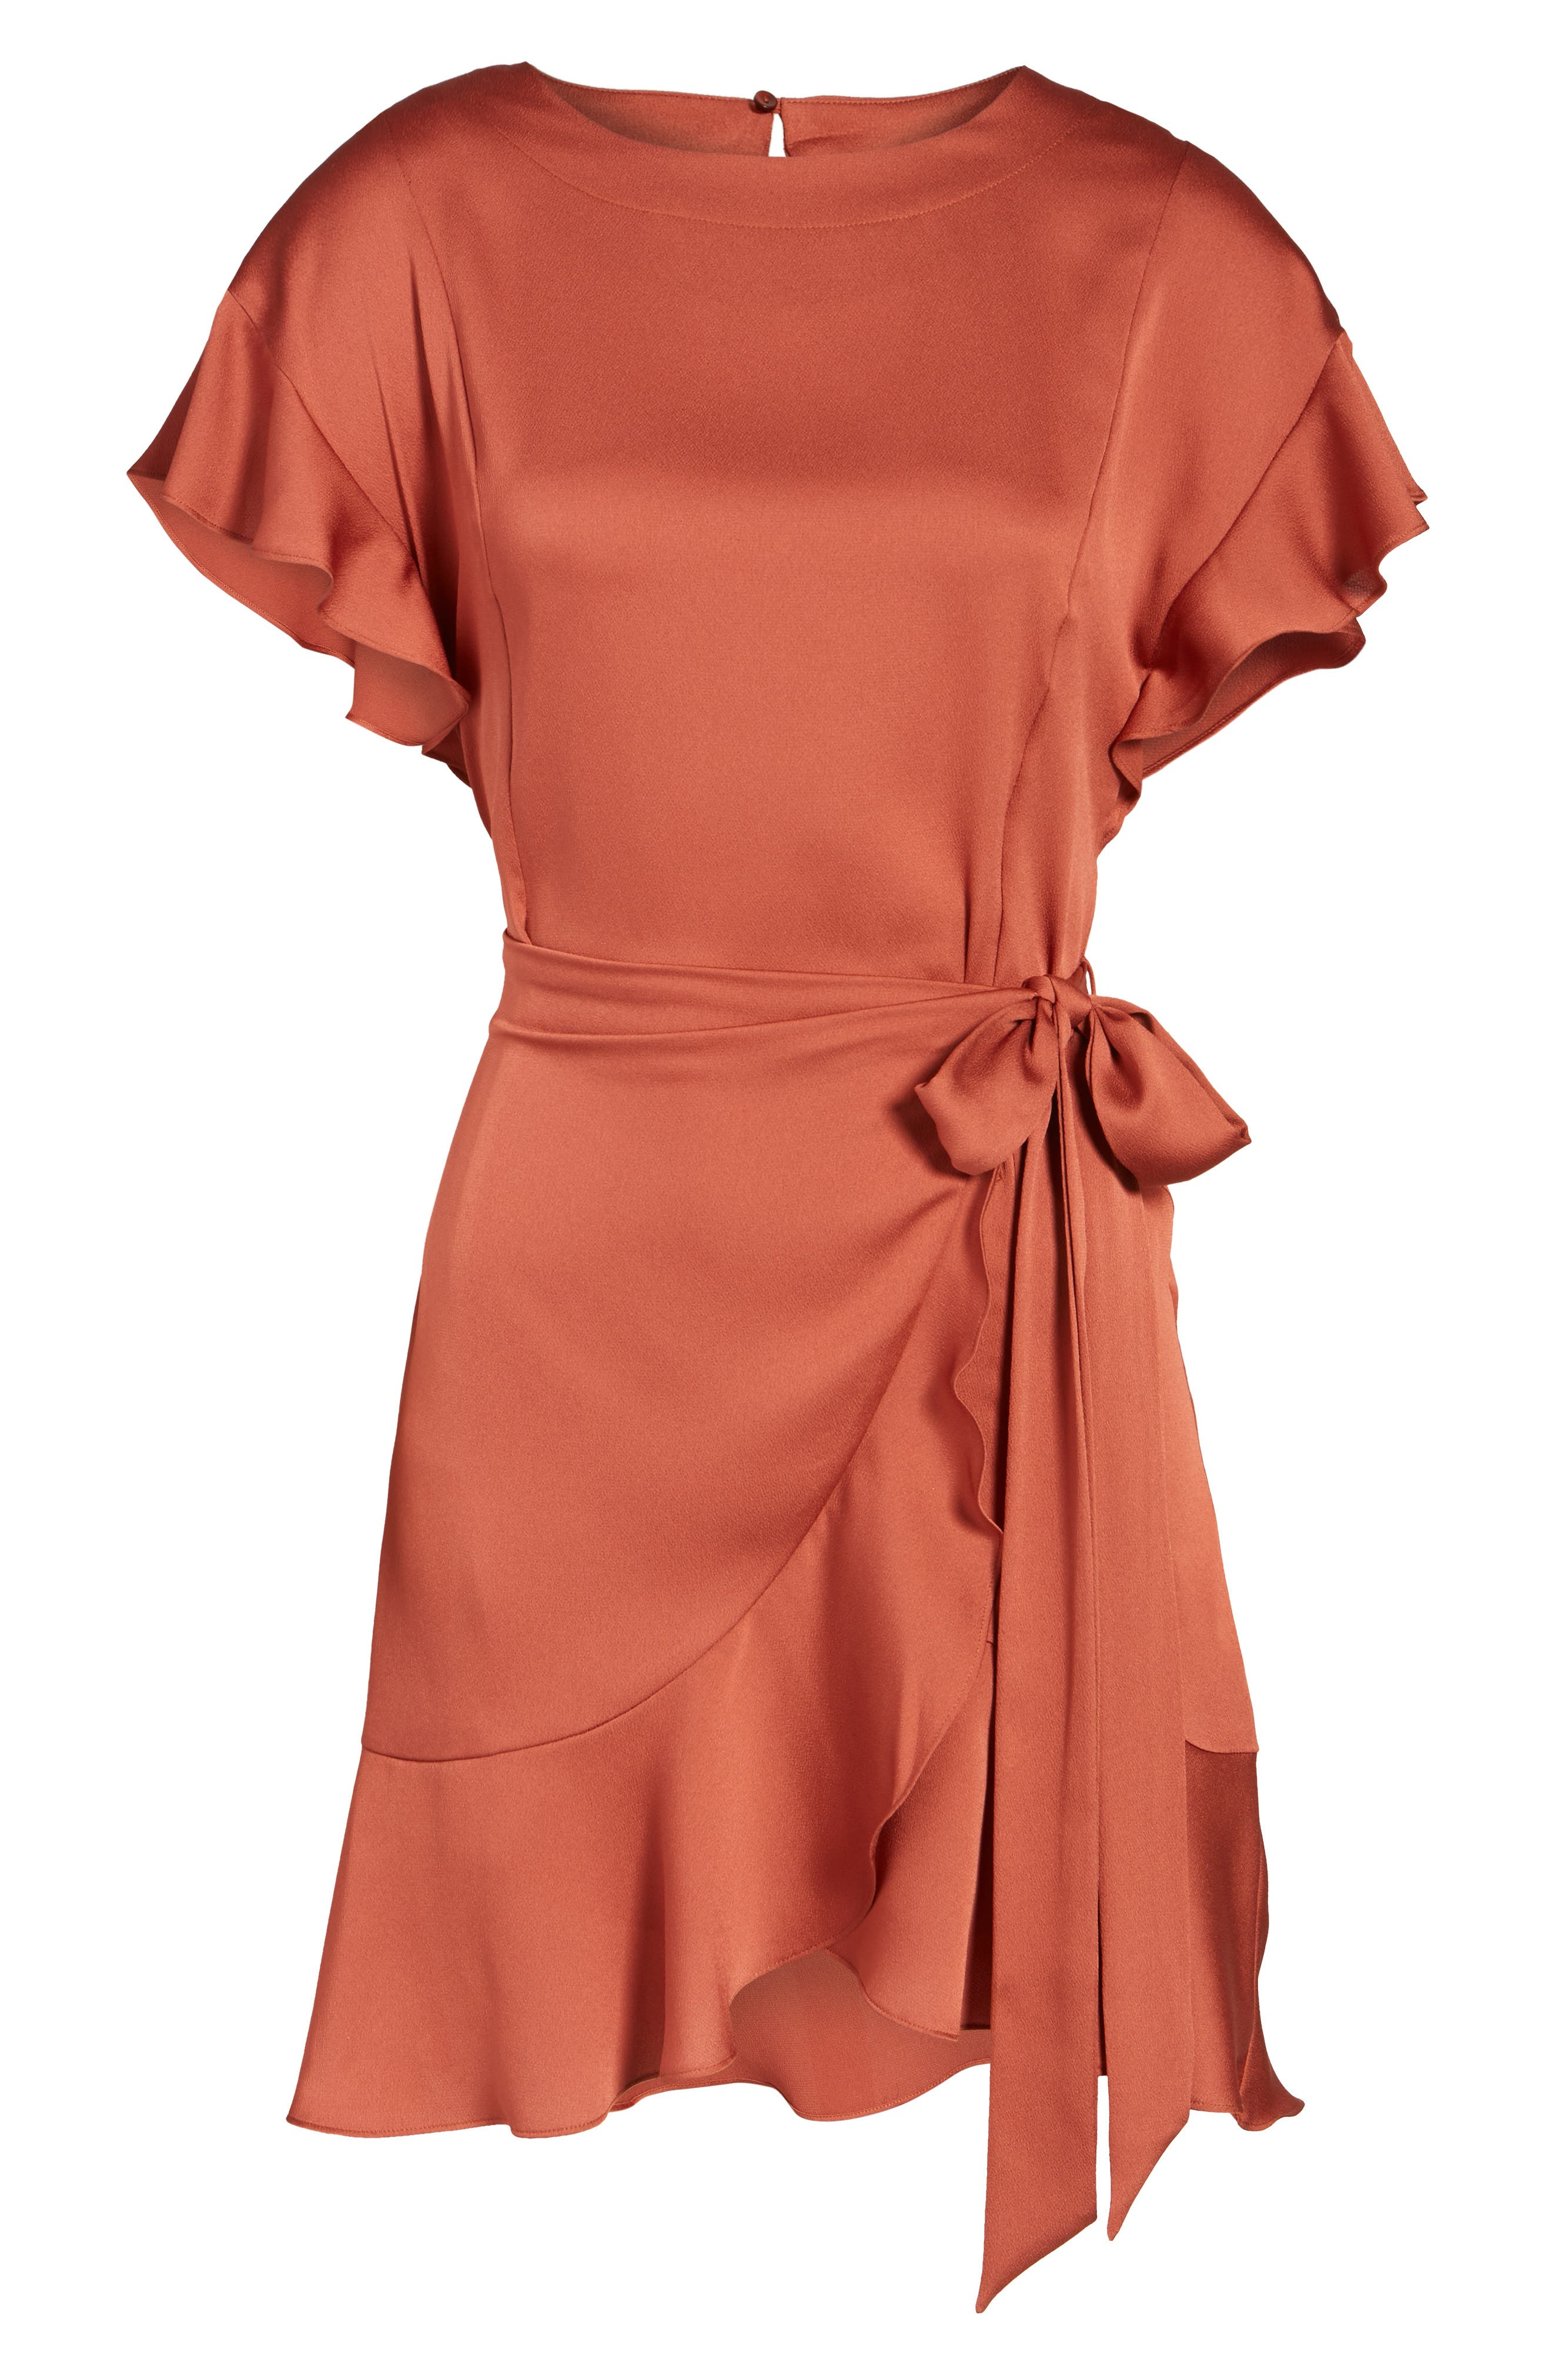 Ruffle Sleeve Satin Dress,                             Alternate thumbnail 6, color,                             Rust Marsala